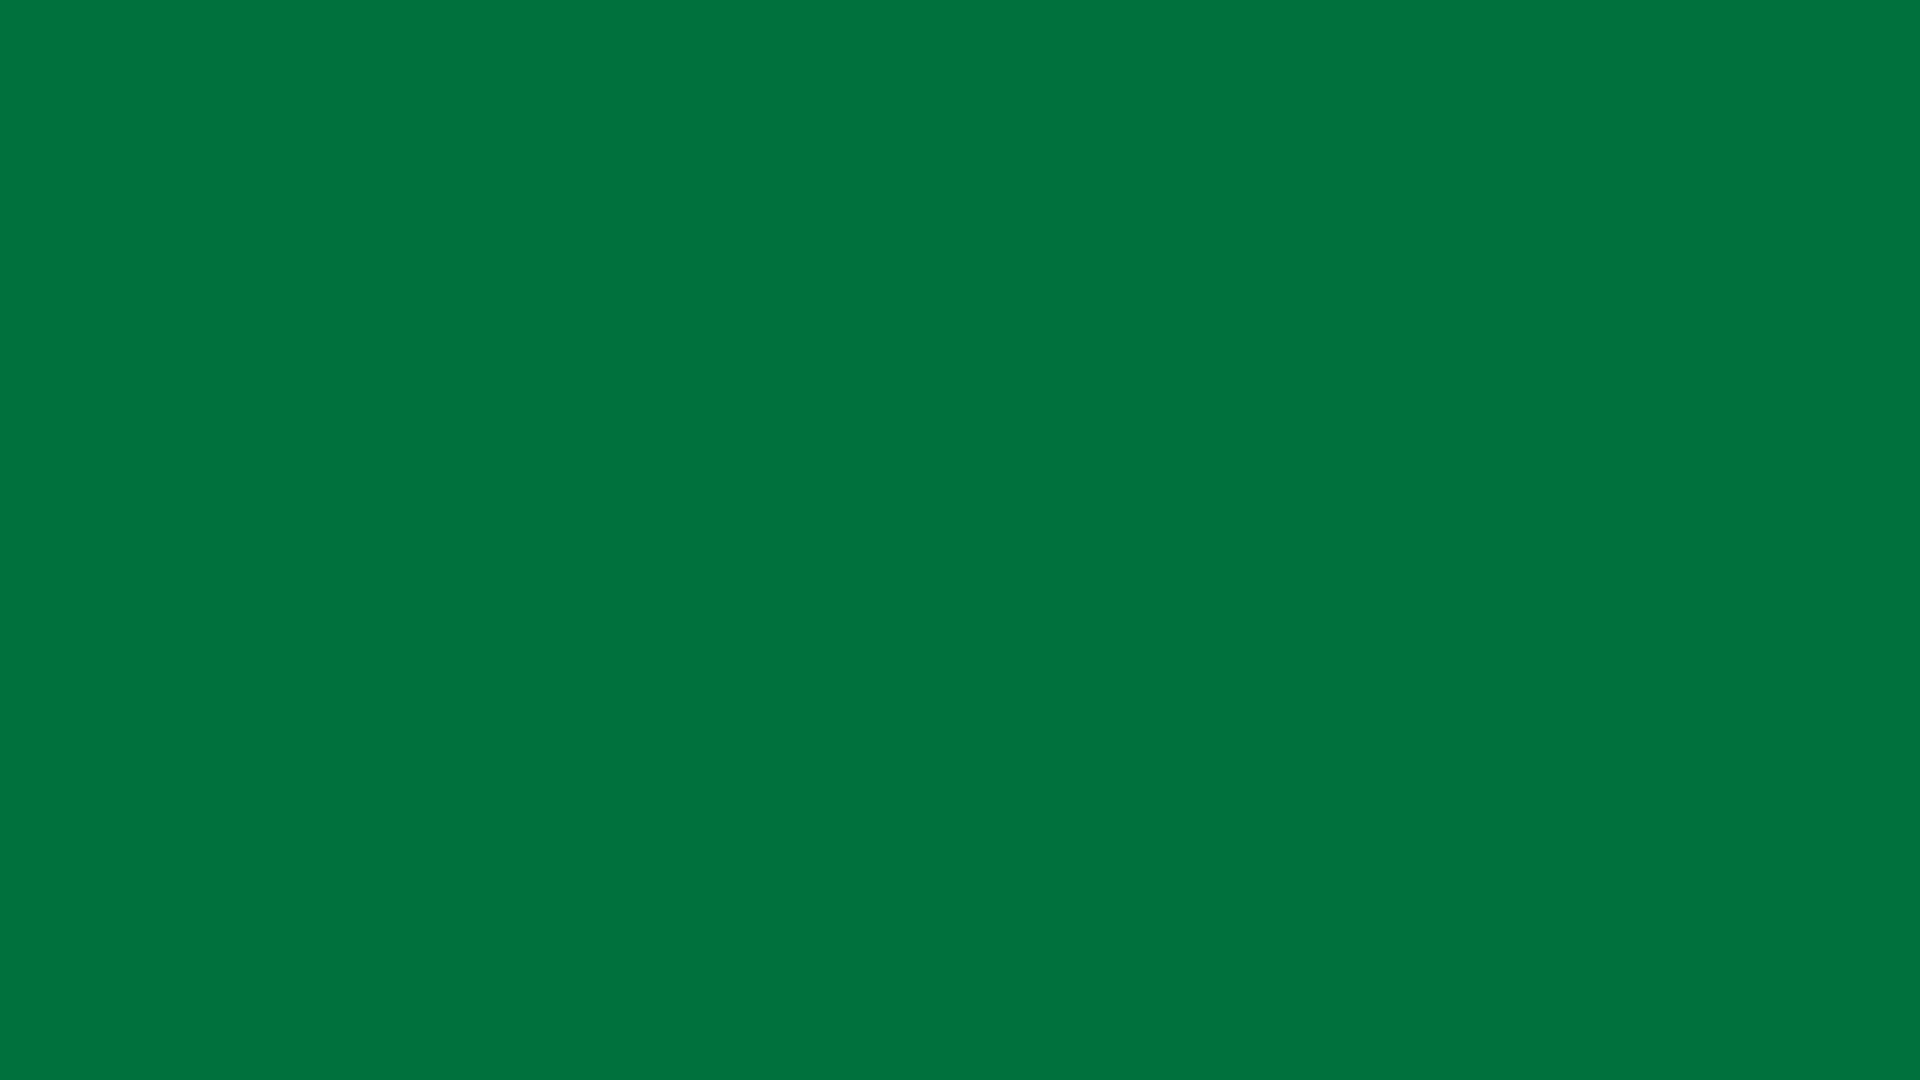 1920x1080 Dartmouth Green Solid Color Background